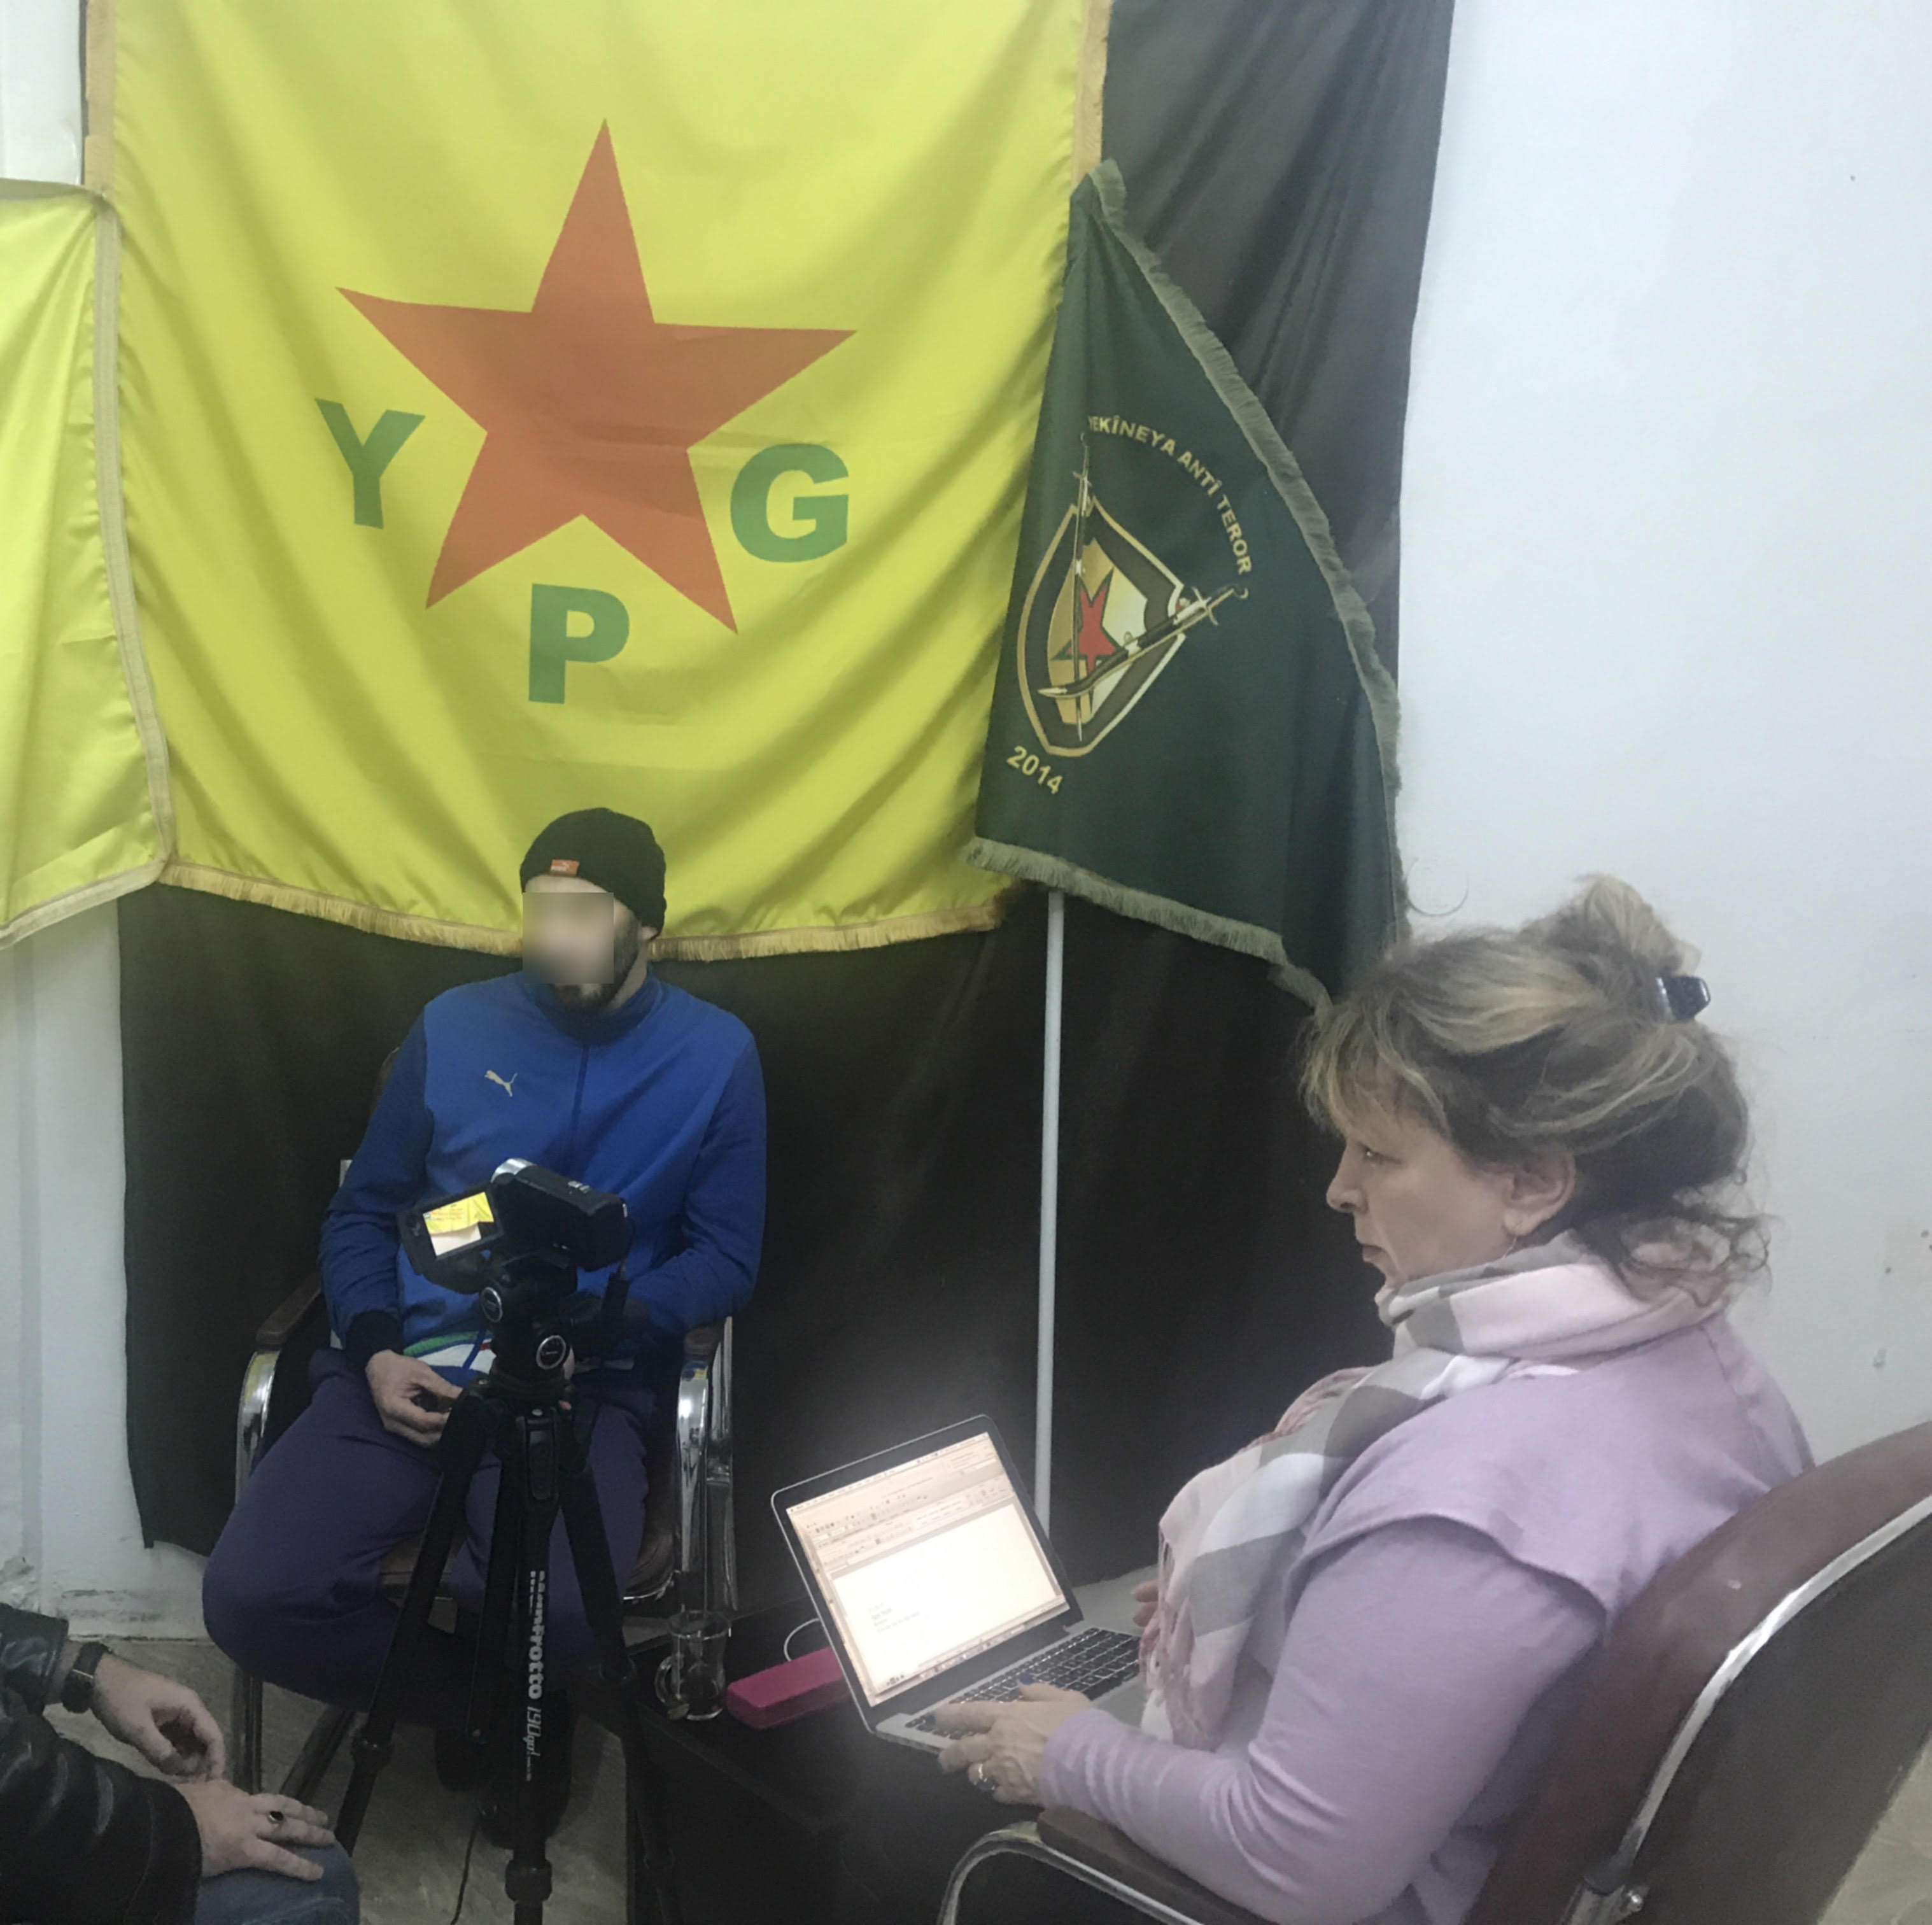 Anne Speckhard interviewing an Islamic State member held by the SDF in Rojava, Syria